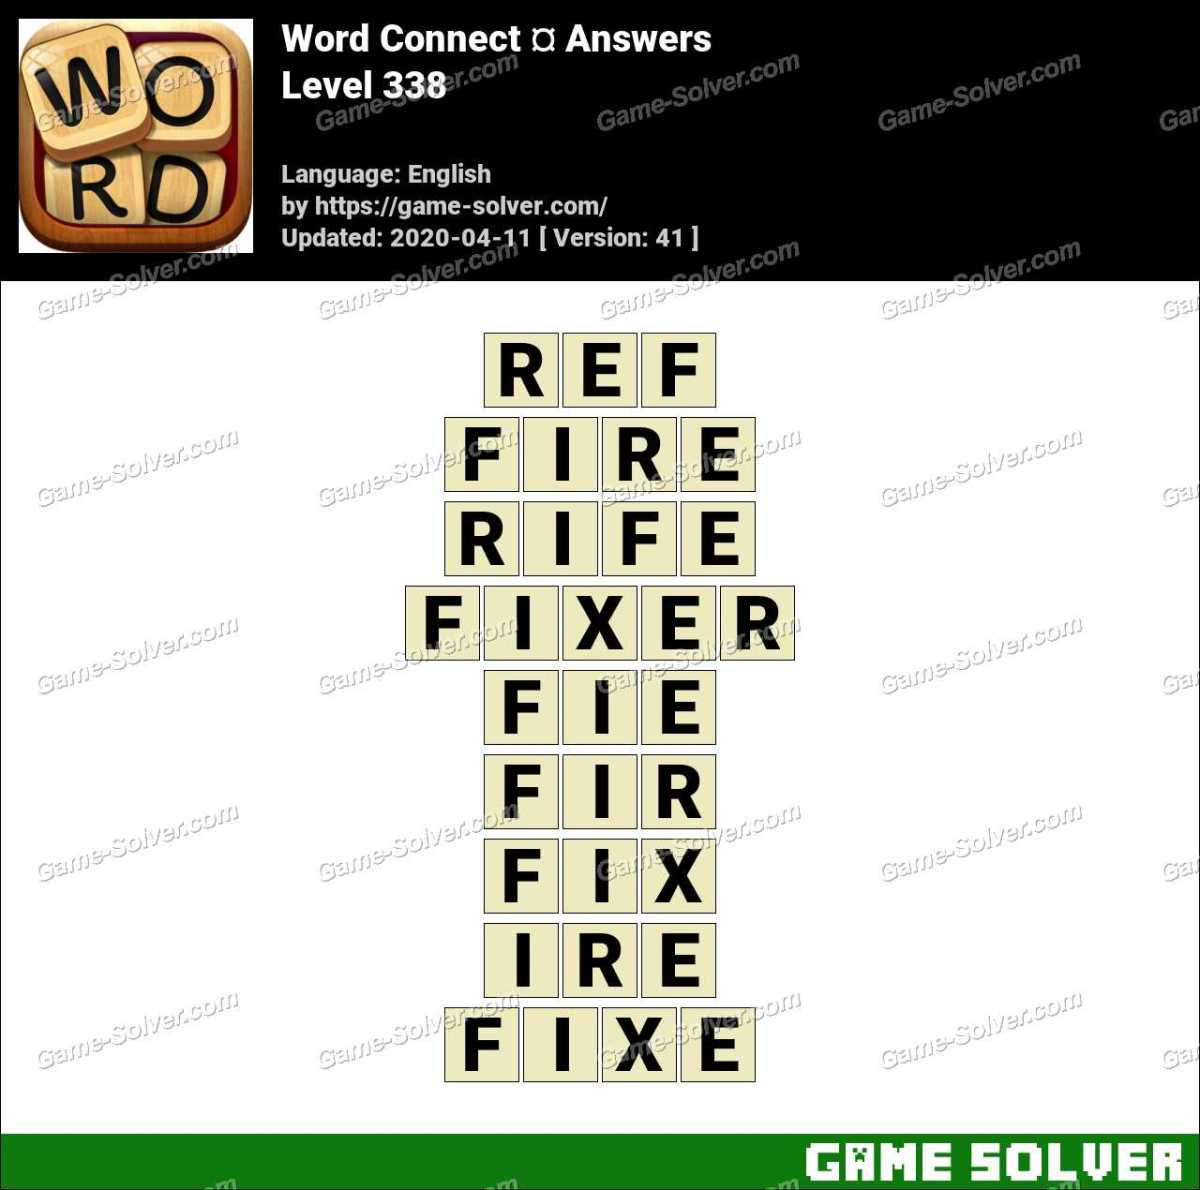 Word Connect Level 338 Answers